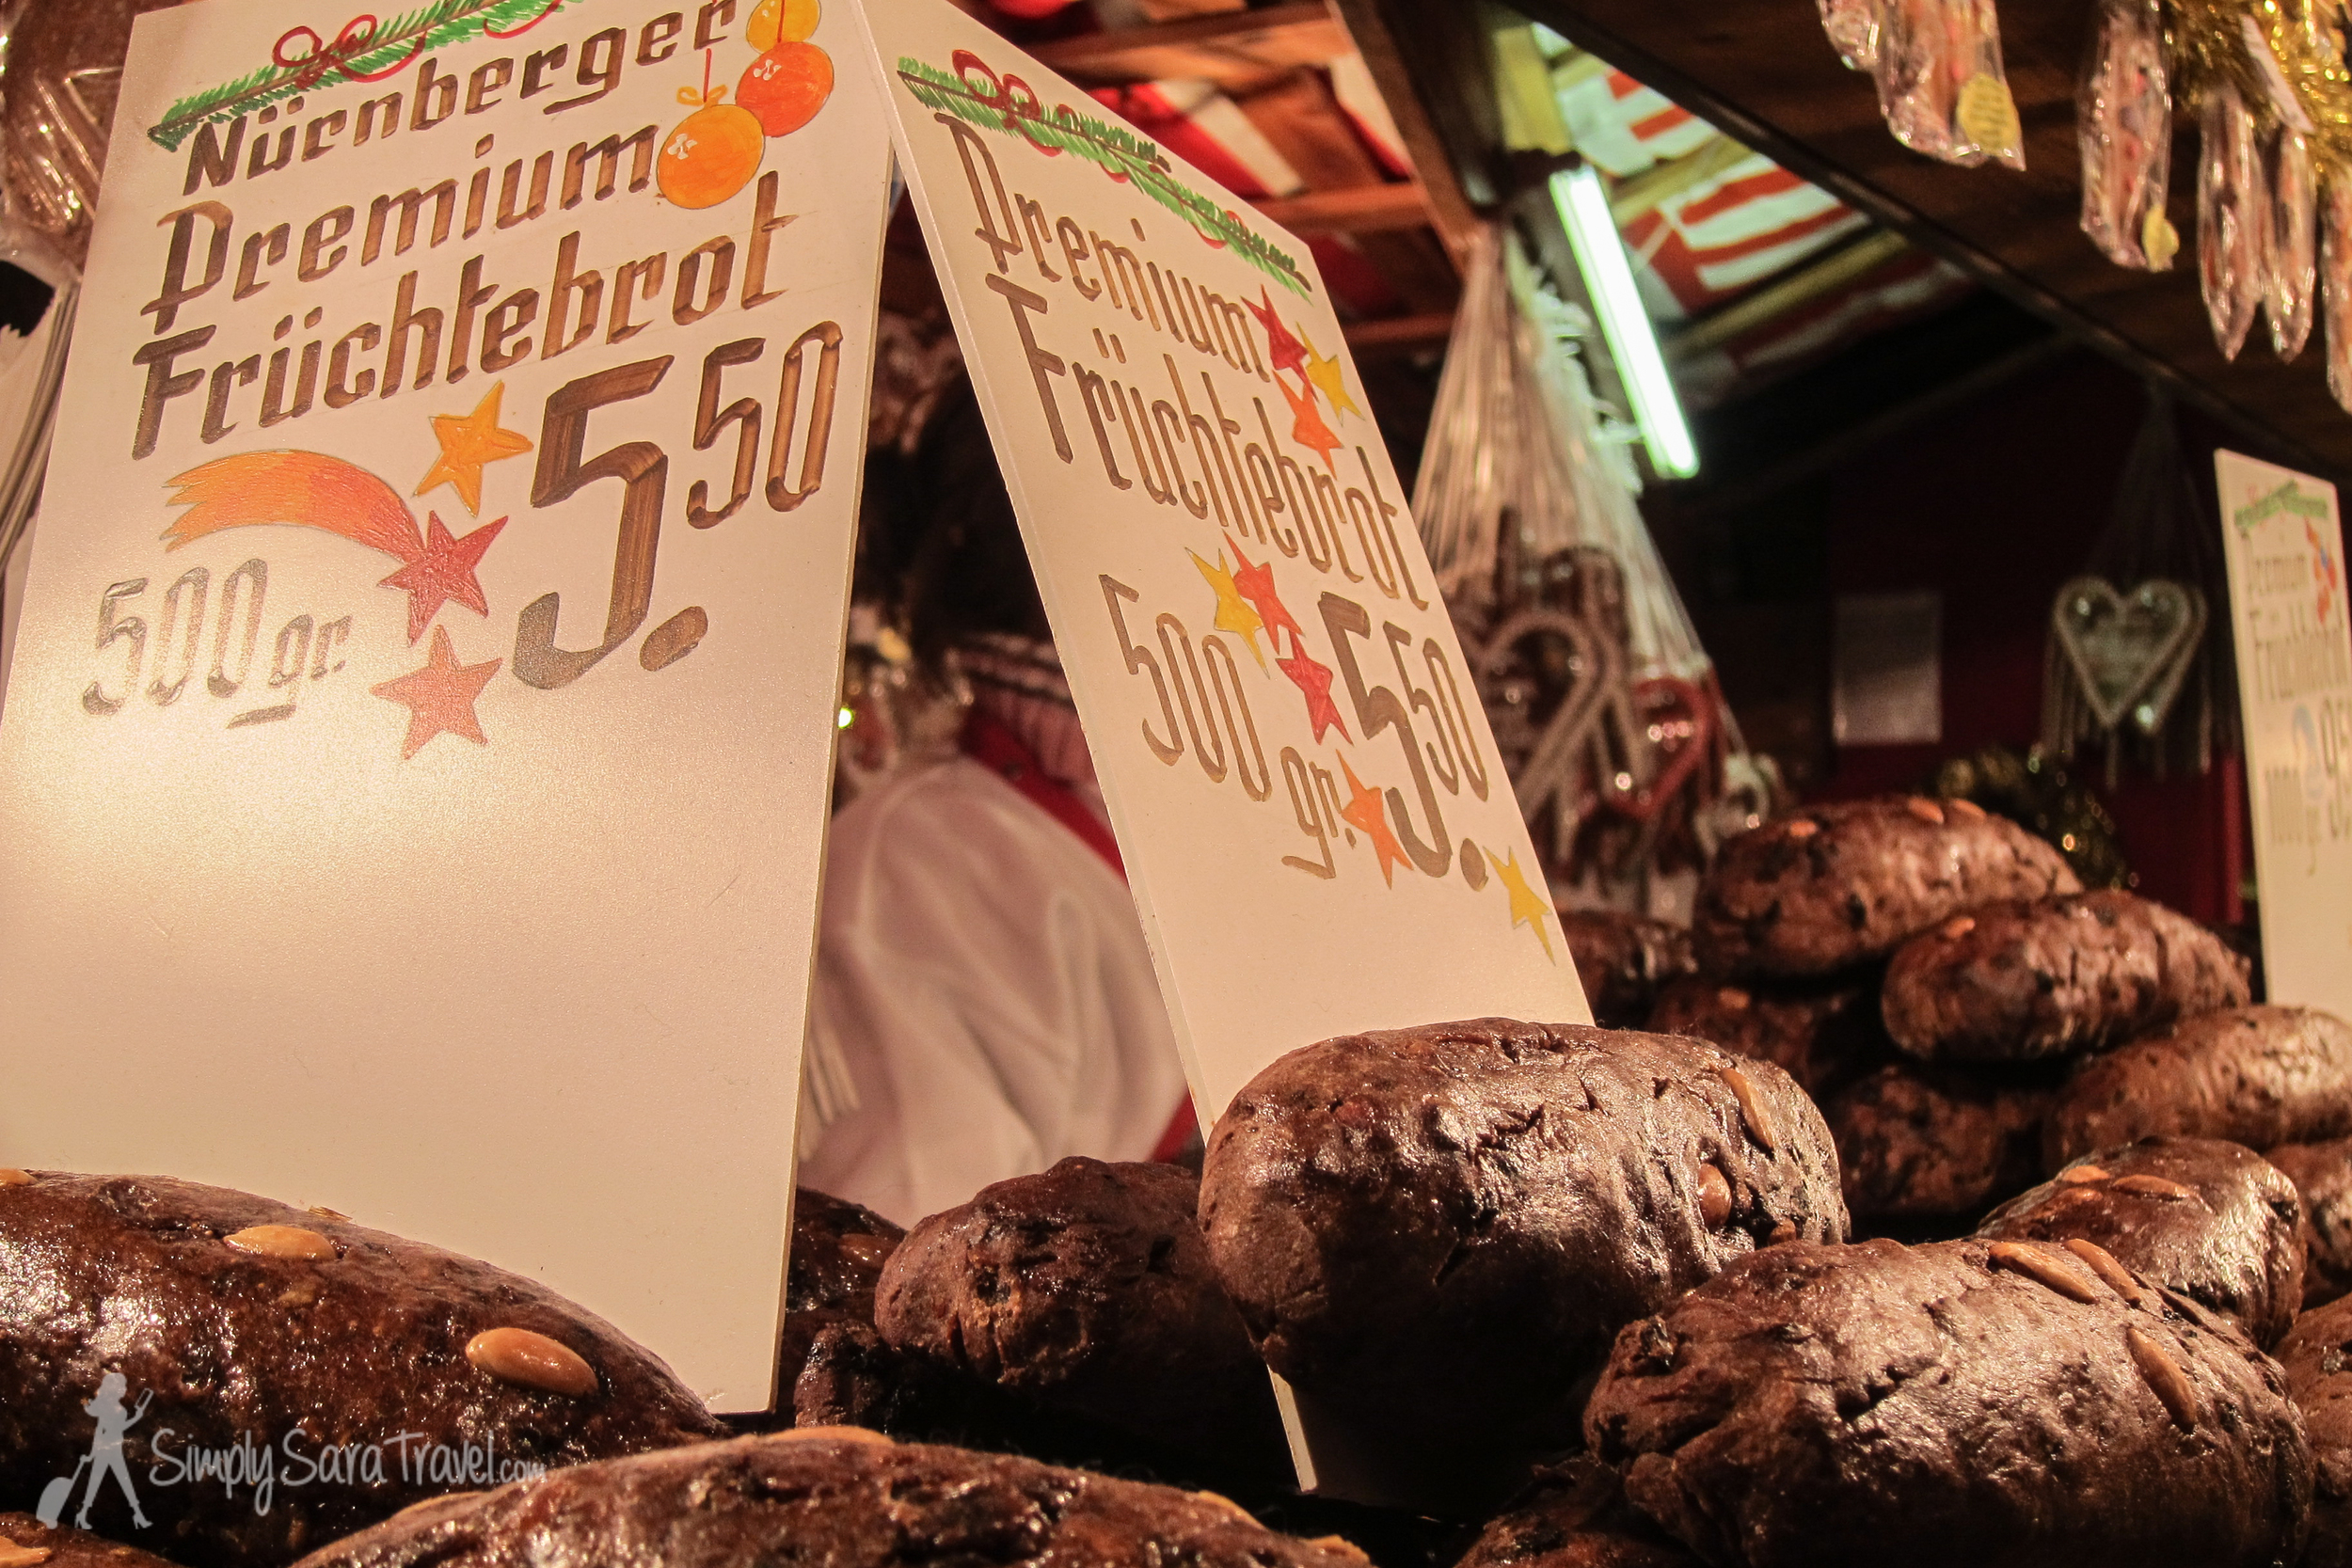 Here's someFrüchtebrot (fruit bread) fromNürnberg. Sadly, I don't have any pictures of the specialty that I really loved from that town, which were soft gingerbread-like cookies called Lebkuchen . I must have eaten them too fast to document!